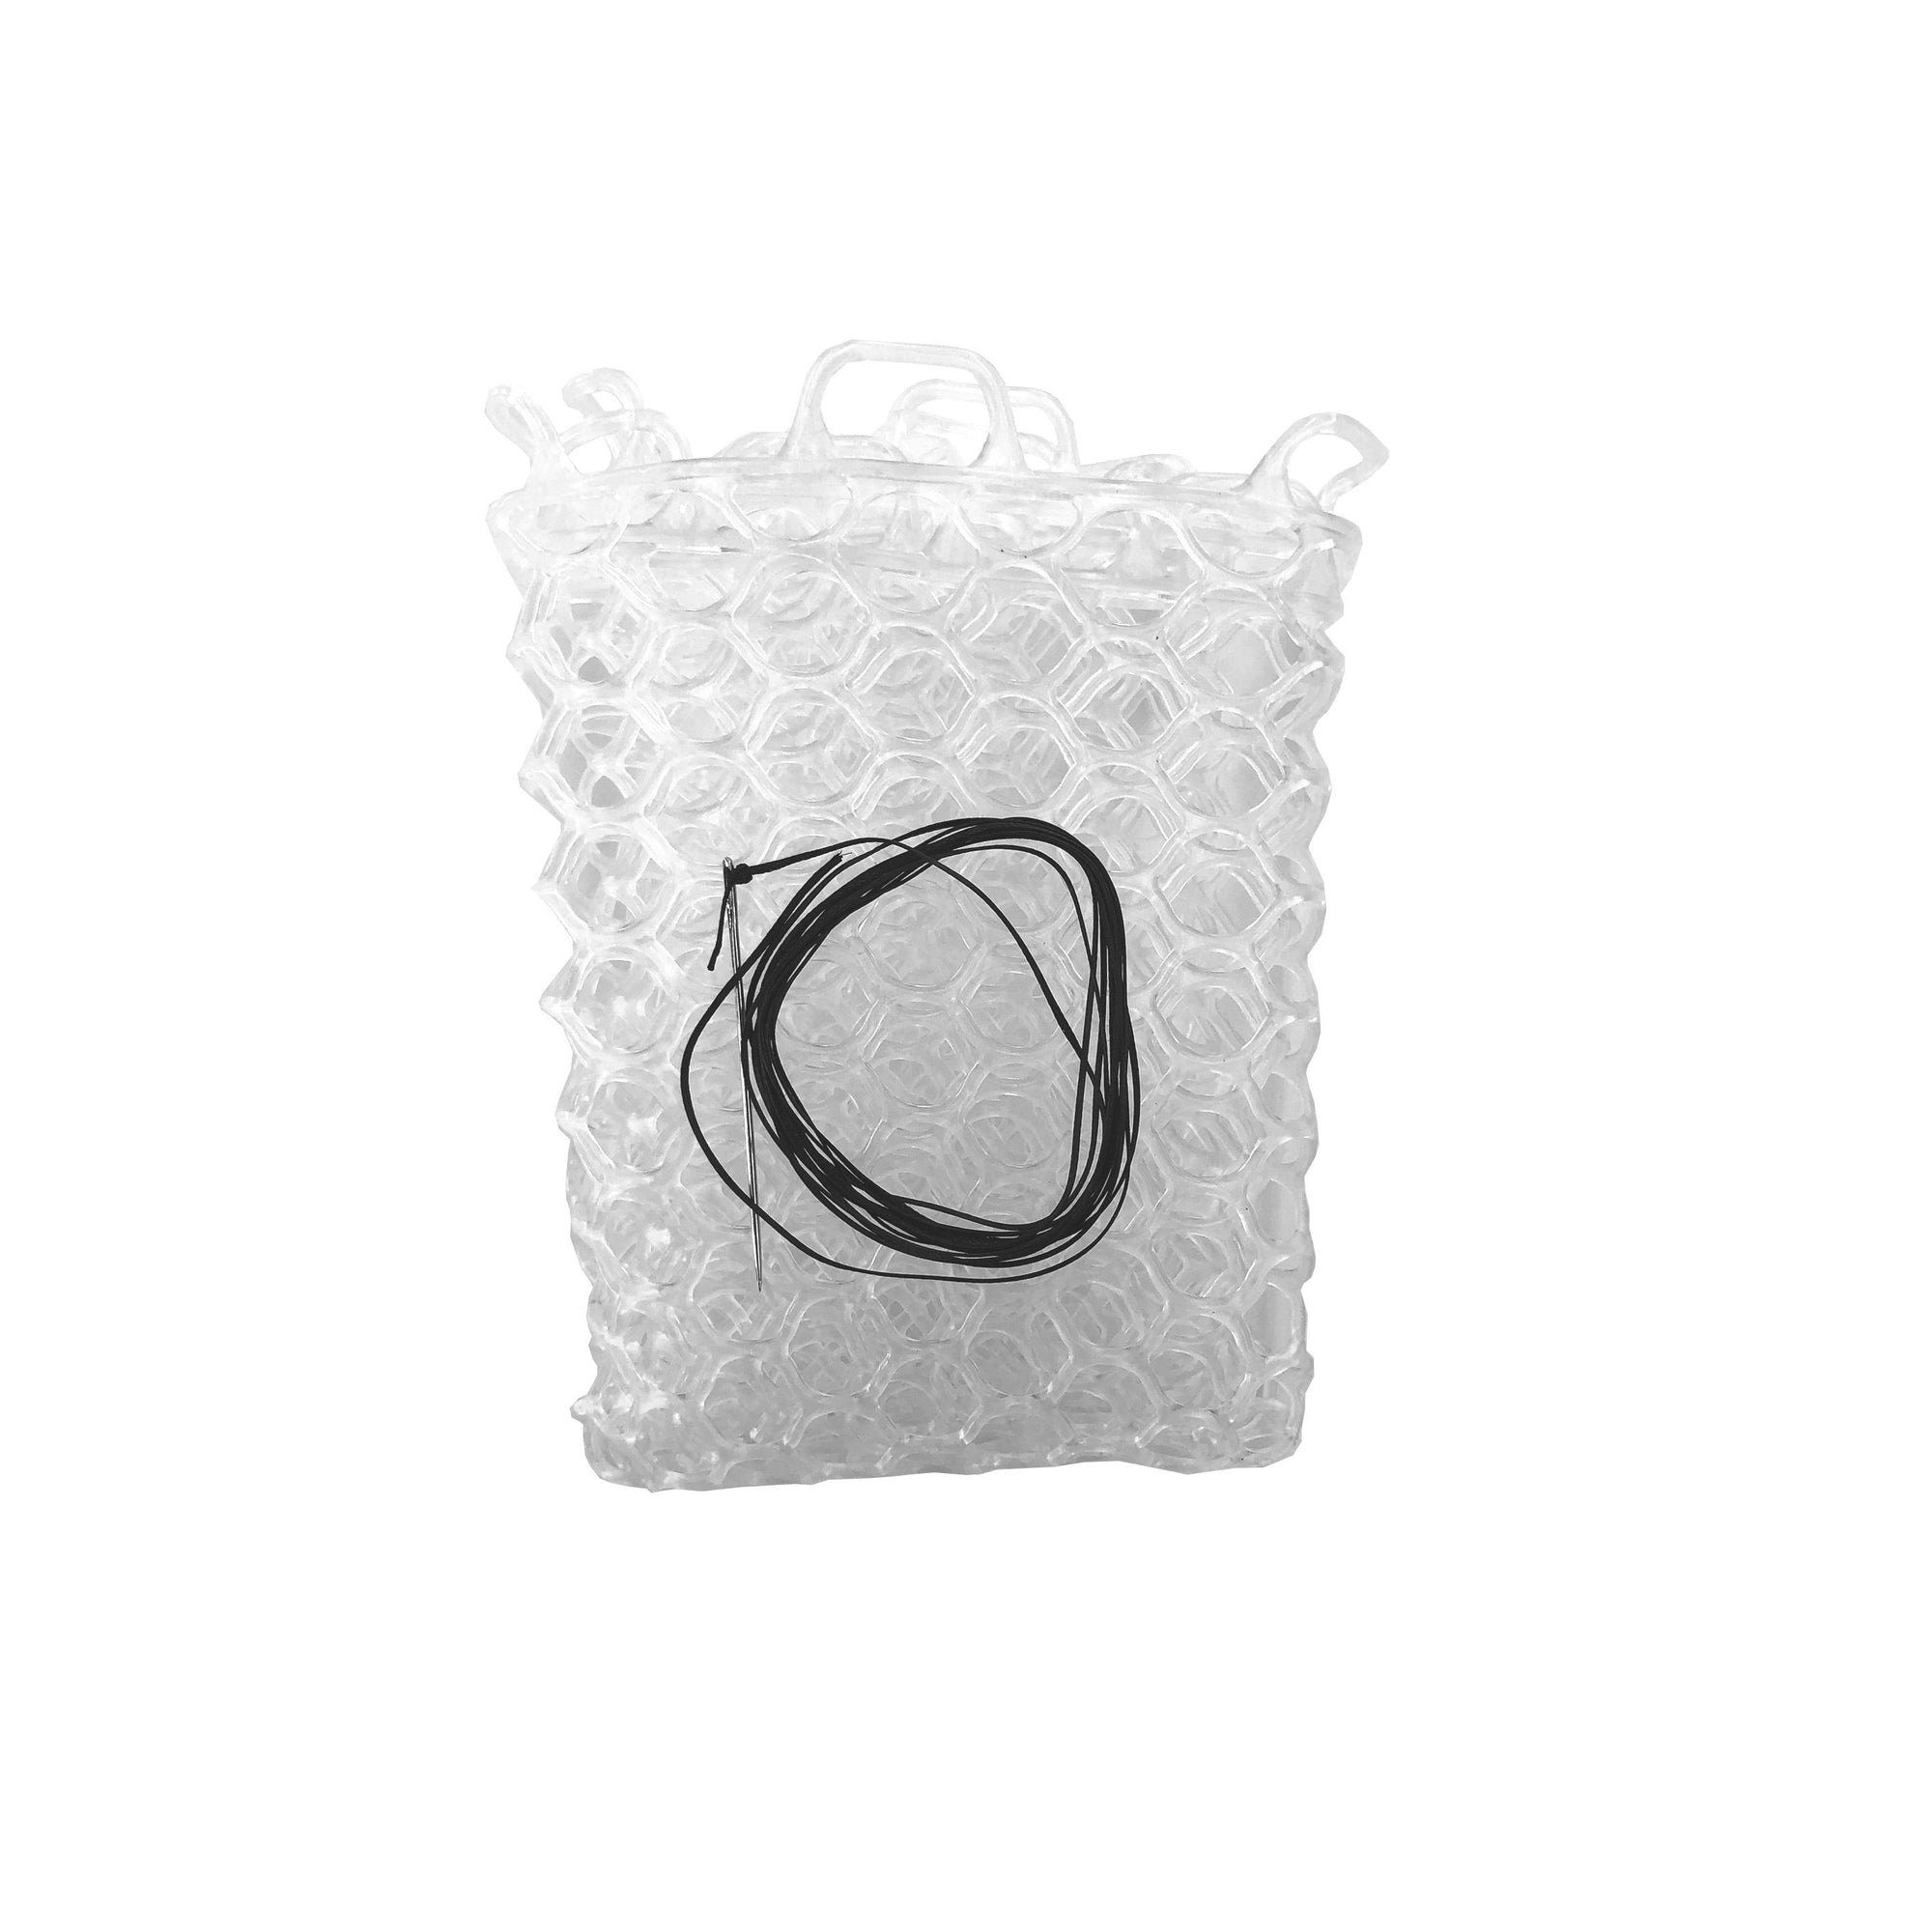 Fishpond Nomad Replacement Rubber Net 12.5""